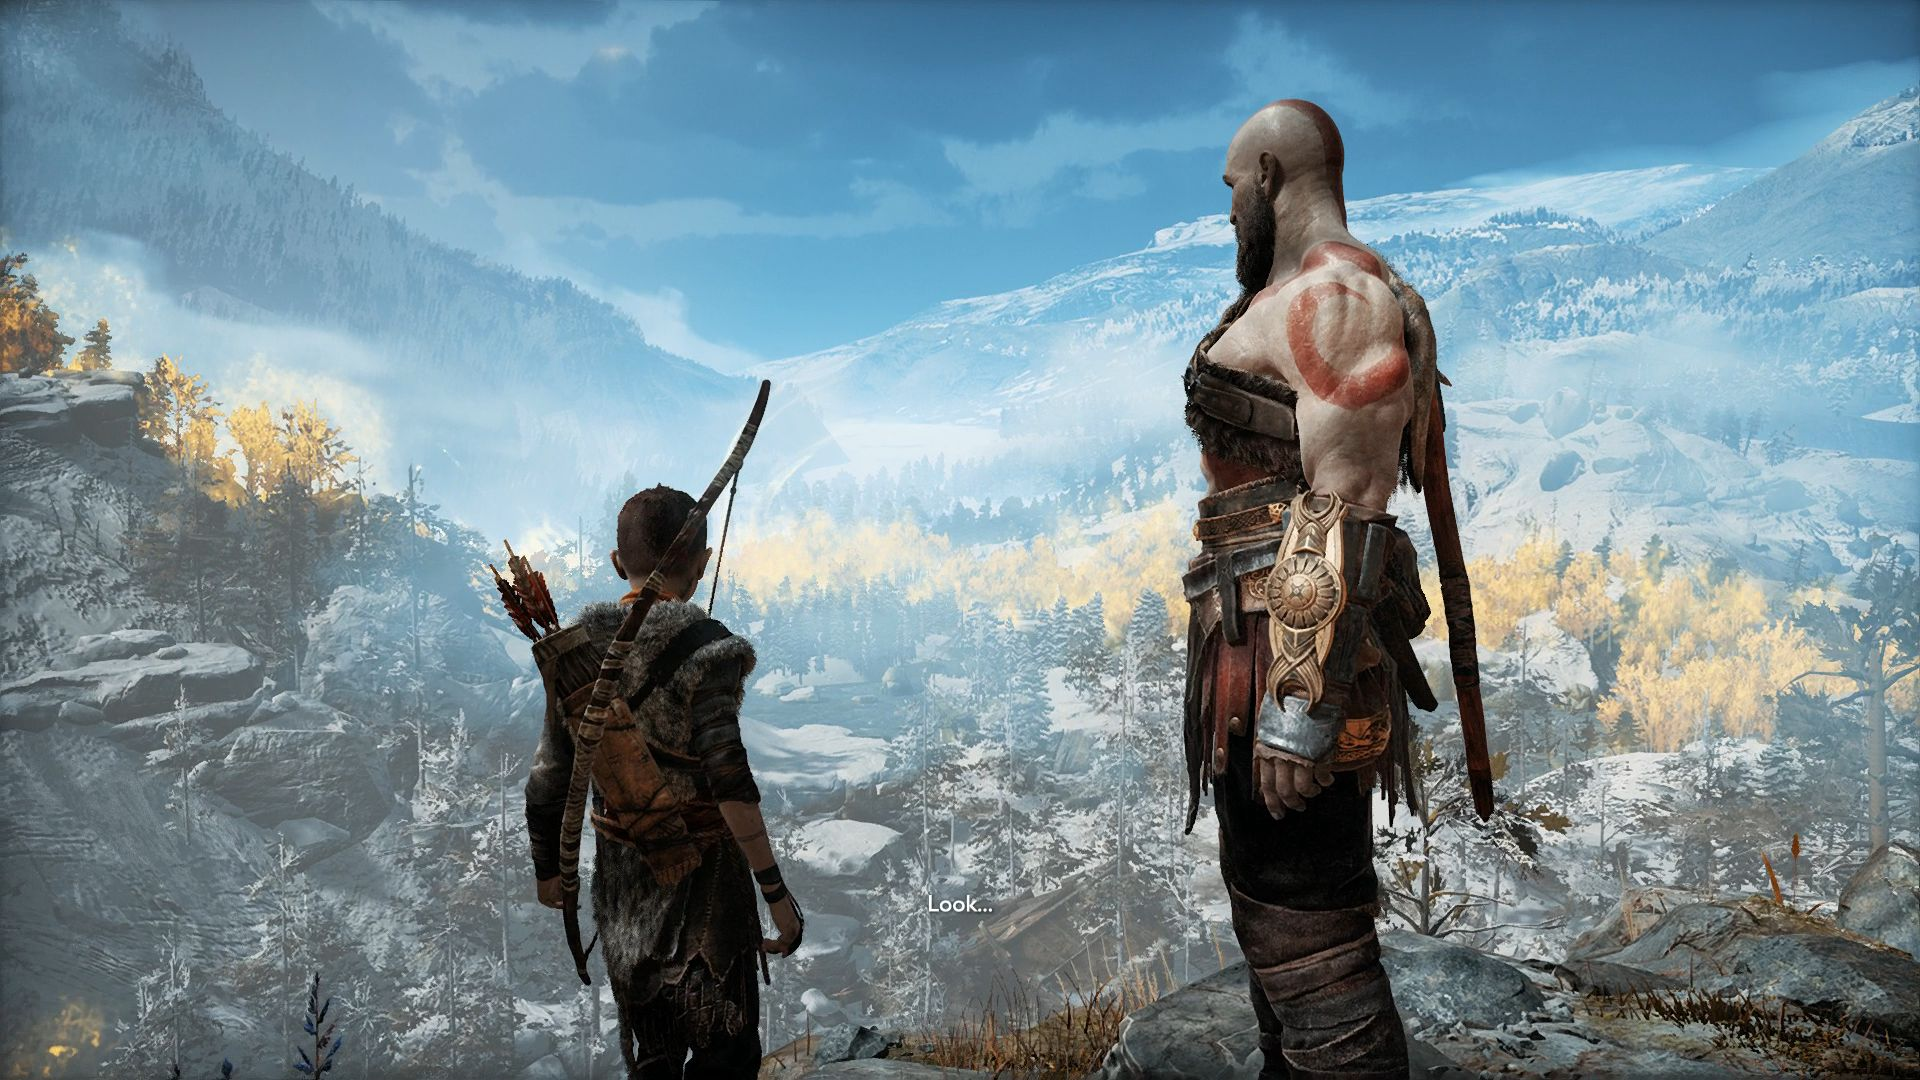 ", ""God of War' can be soon launched on PC Announced Director Cory Barlog"